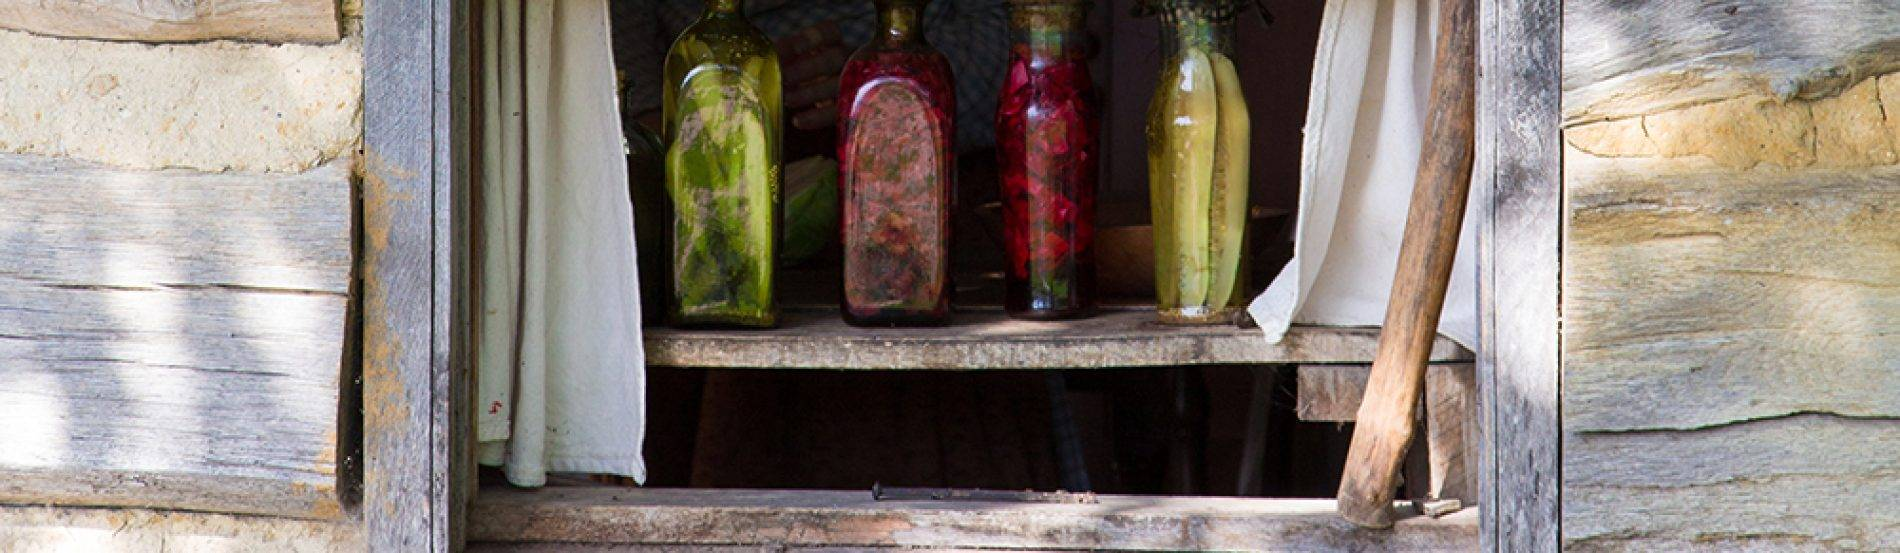 jars of preserved produce in windowsill